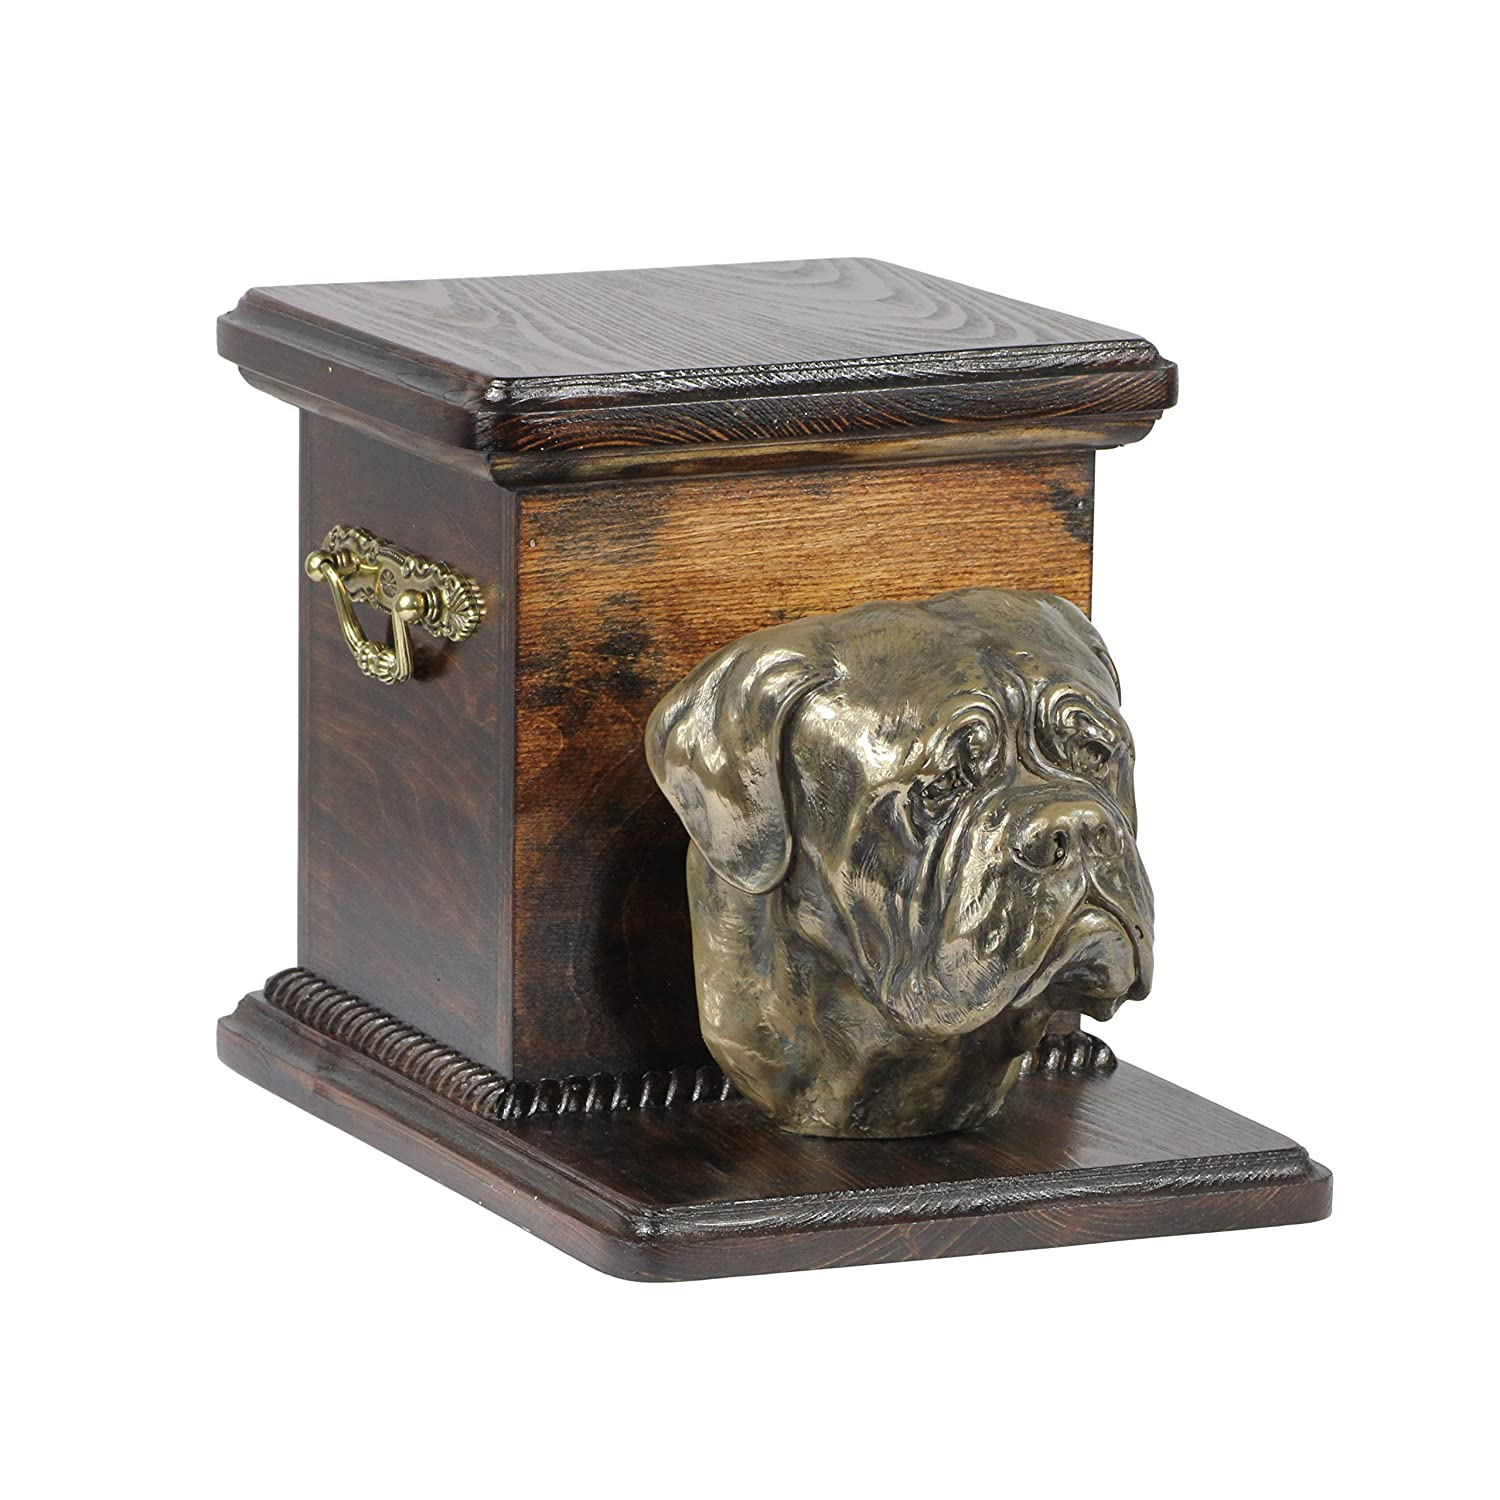 Dogue de Bordeaux, memorial, urn for dog's ashes, with dog statue, ArtDog